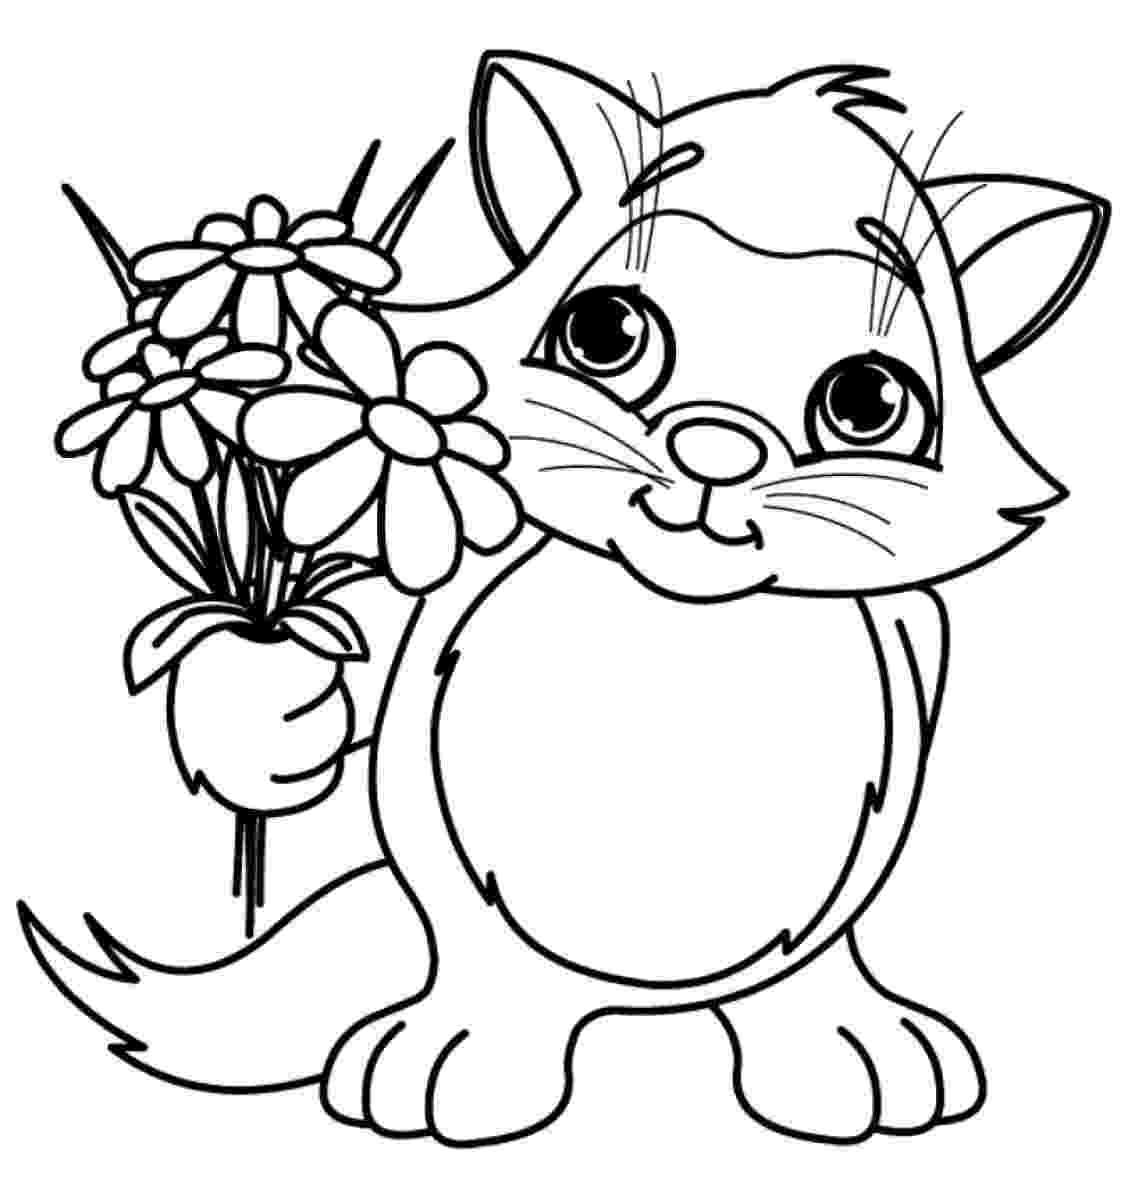 spring flower coloring pages spring flower coloring pages getcoloringpagescom flower coloring spring pages